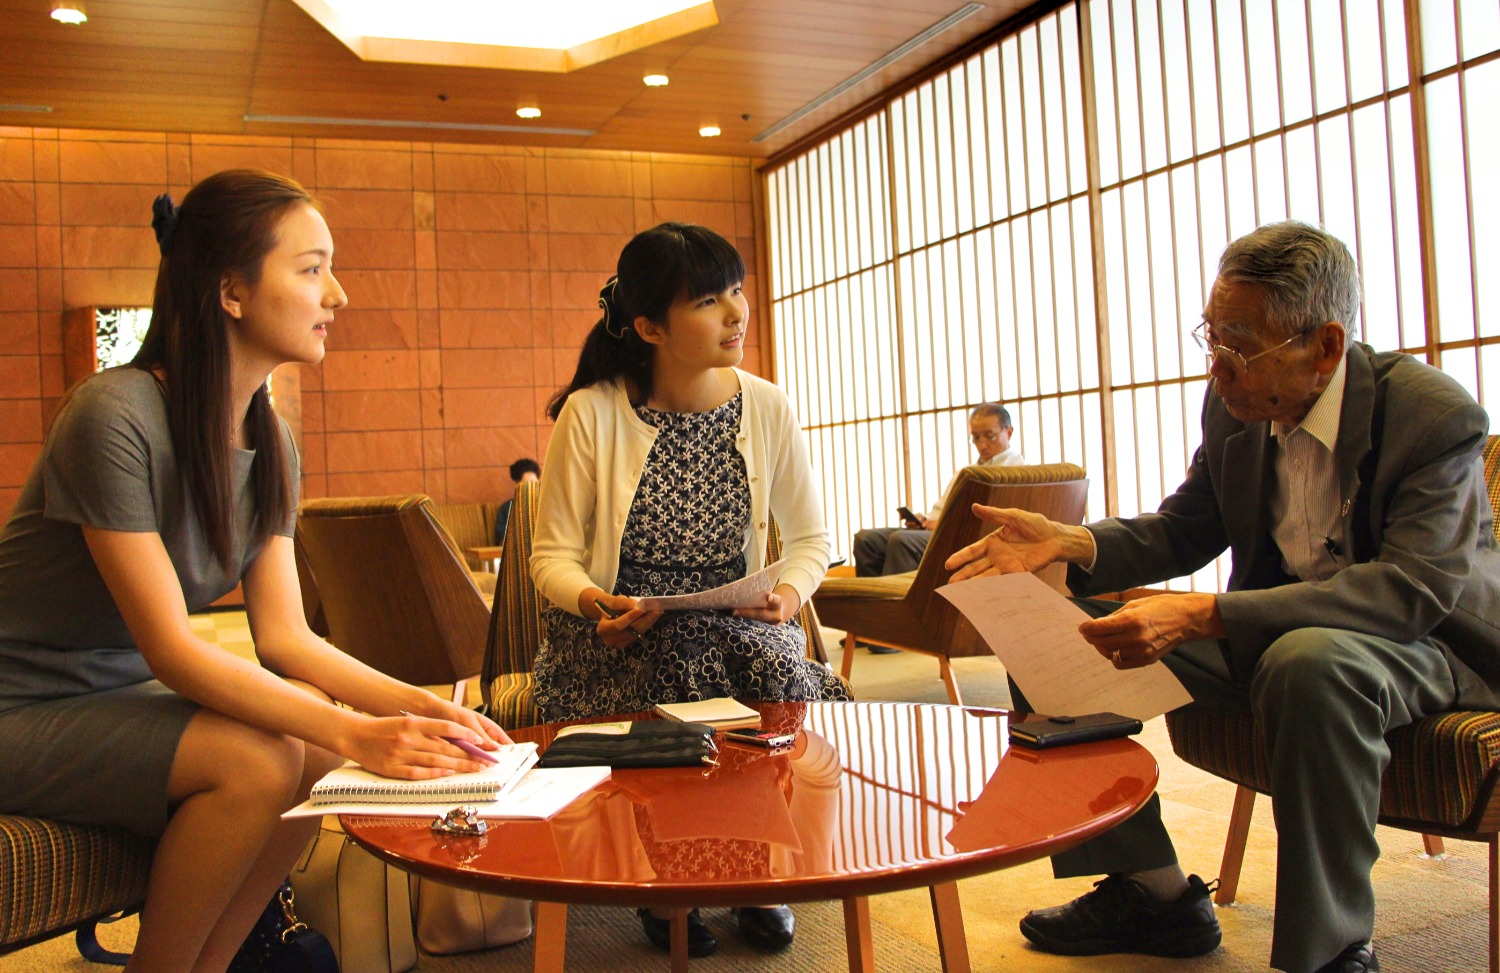 Interview with APIC councilor Mr. Hirono Ryokichi